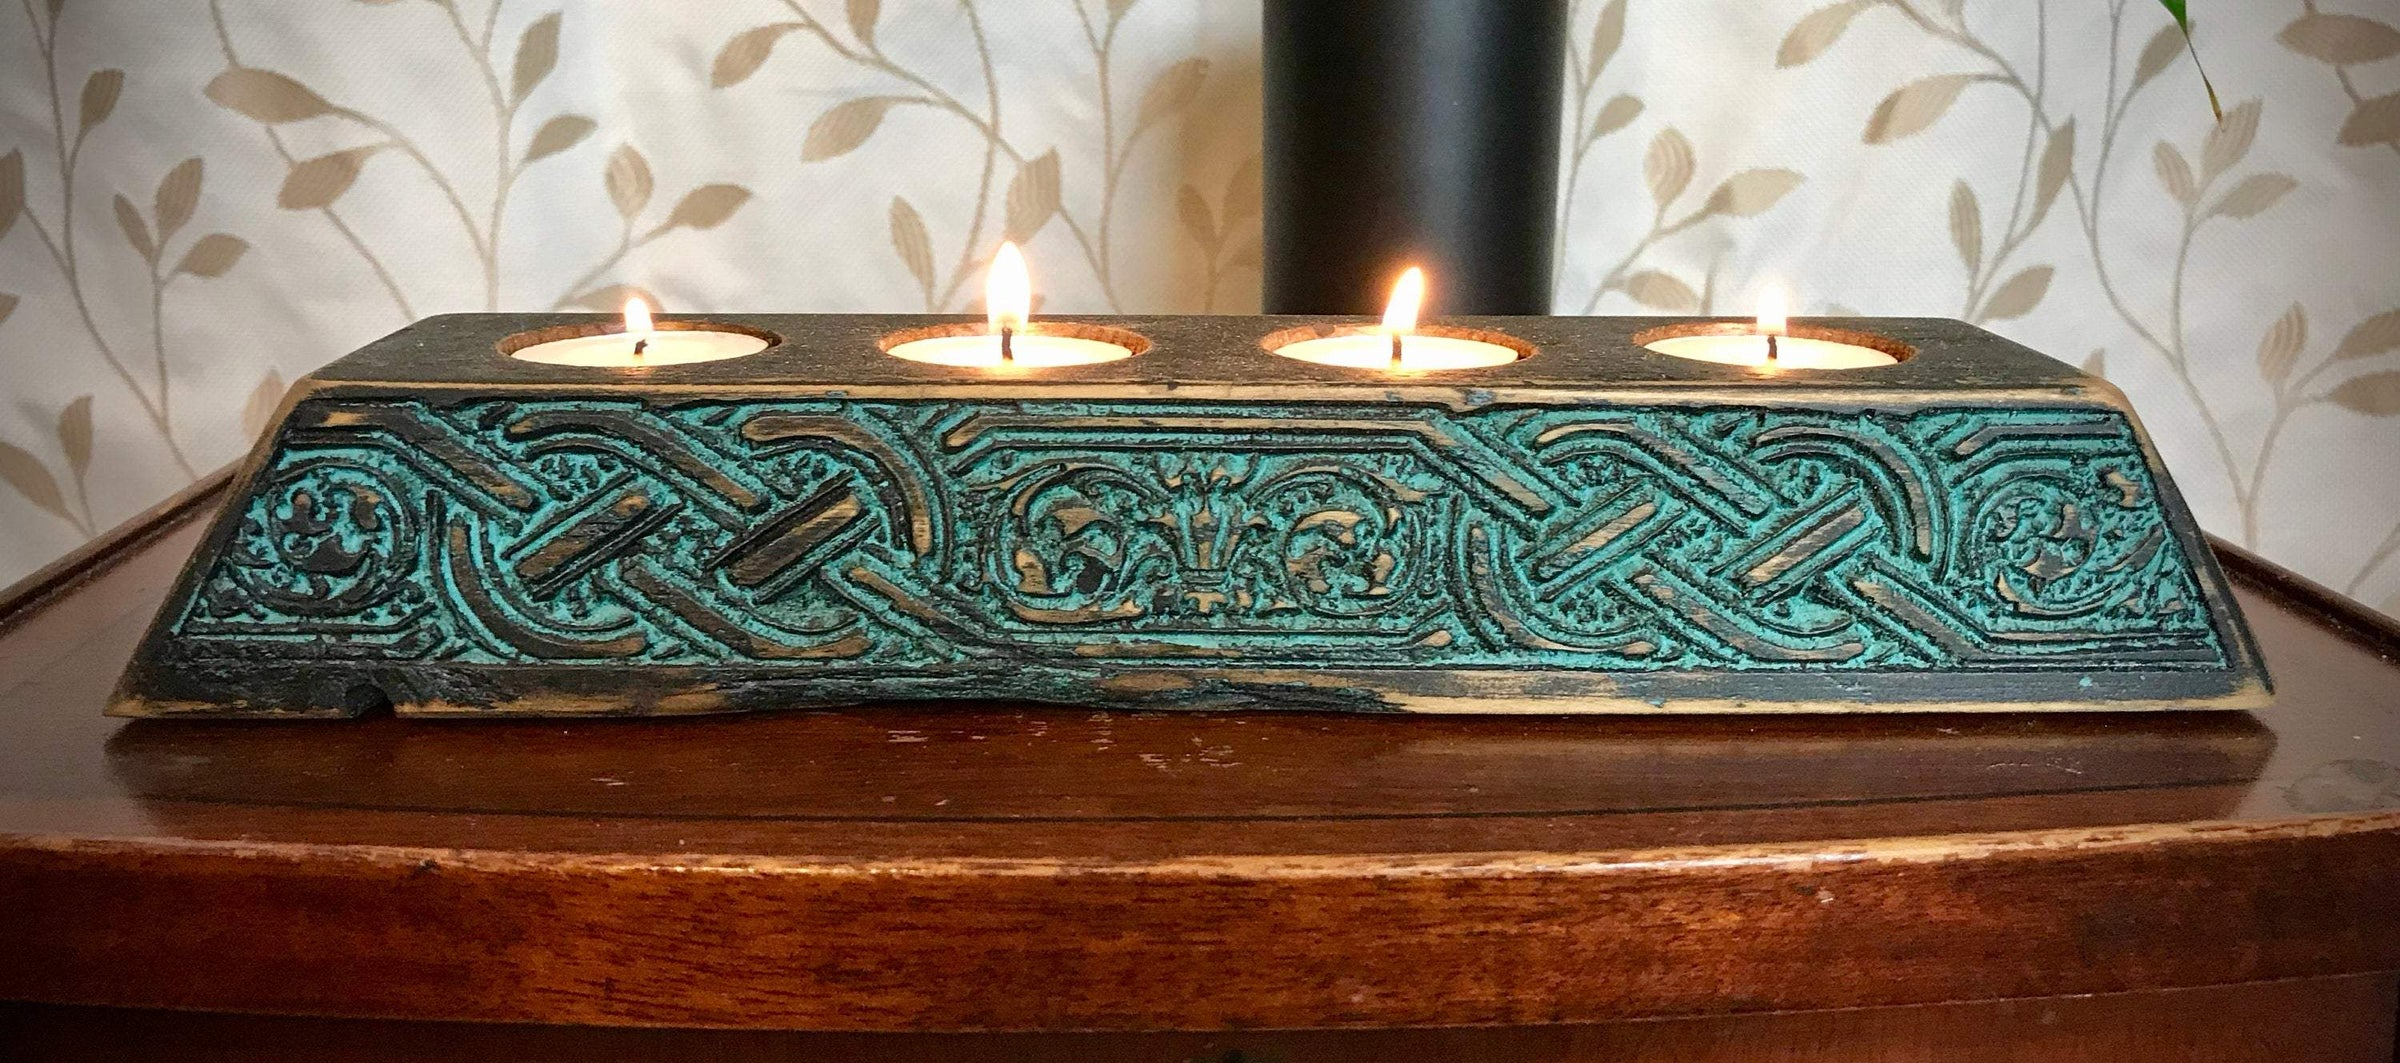 Large Wooden Antique Styled Medieval Celtic Knot Candle Holder Holds Six Tea Candles Renaissance Style